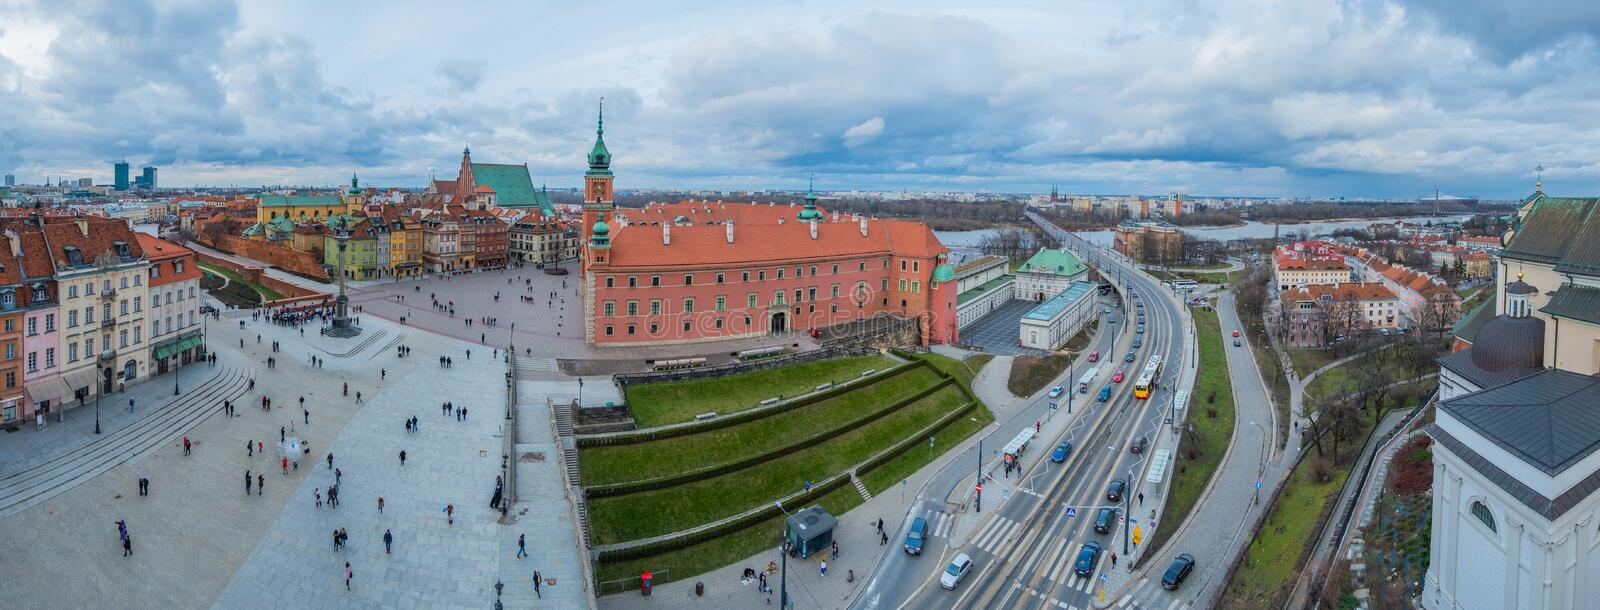 Royal Castle and the Castle Square in Old Town of Warsaw, Poland. Airial view of Royal Castle and the Castle Square in Old Town of Warsaw, Poland. Panorama royalty free stock photo